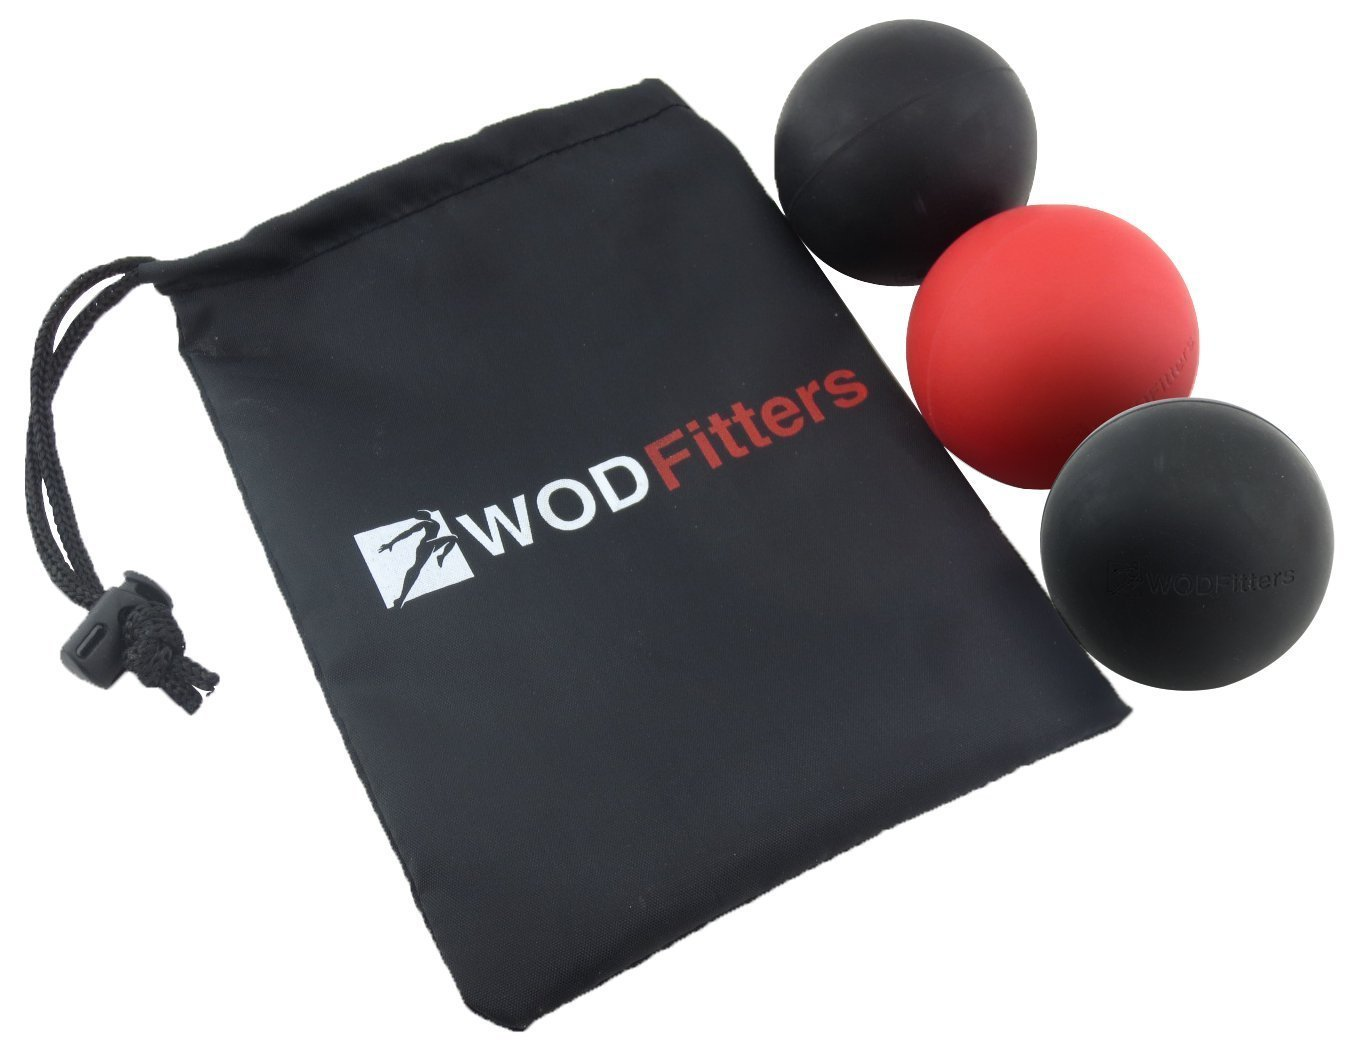 WODFitters Mobility Lacrosse Balls - Set of 3 Massage Balls for Trigger Point and Myofascial Release Specifically Designed for Cross Training, Mobility, Warm Up, Recovery WODs for Increased Performance and Overall Fitness + Carrying Bag (3 Pack)